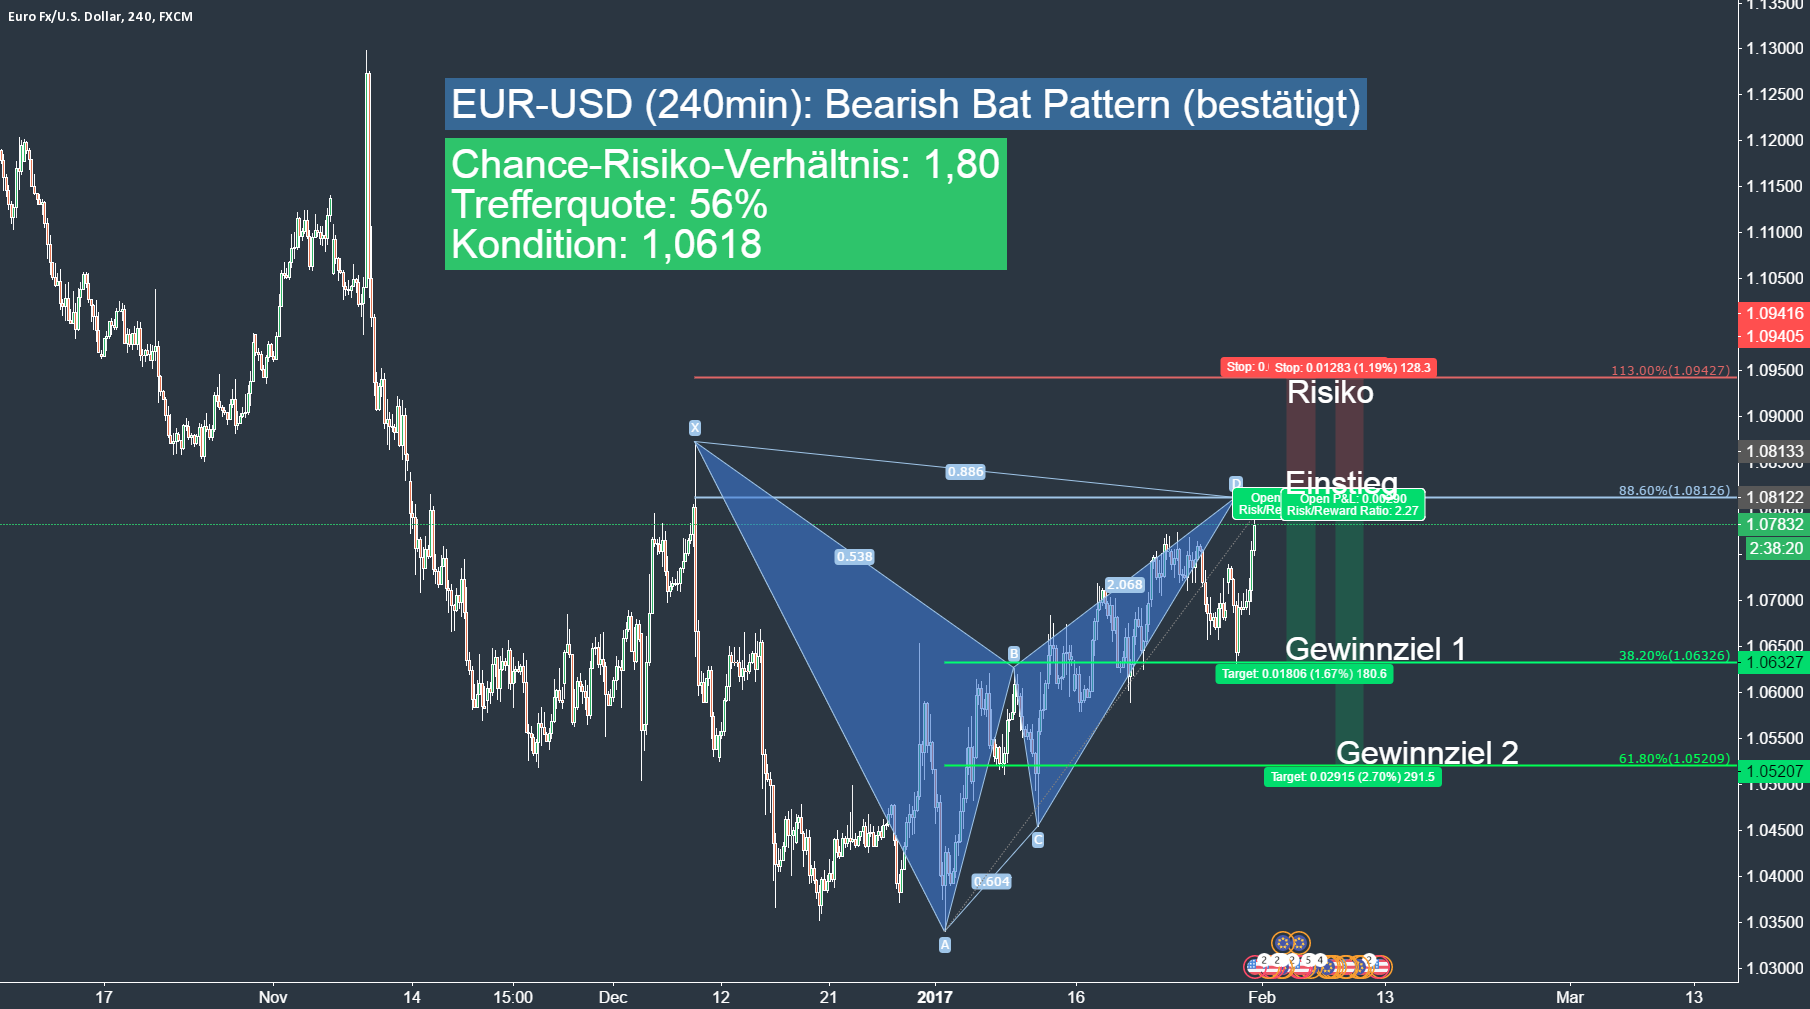 EUR-USD (240min): Bearish Gartley Pattern (bestätigt)